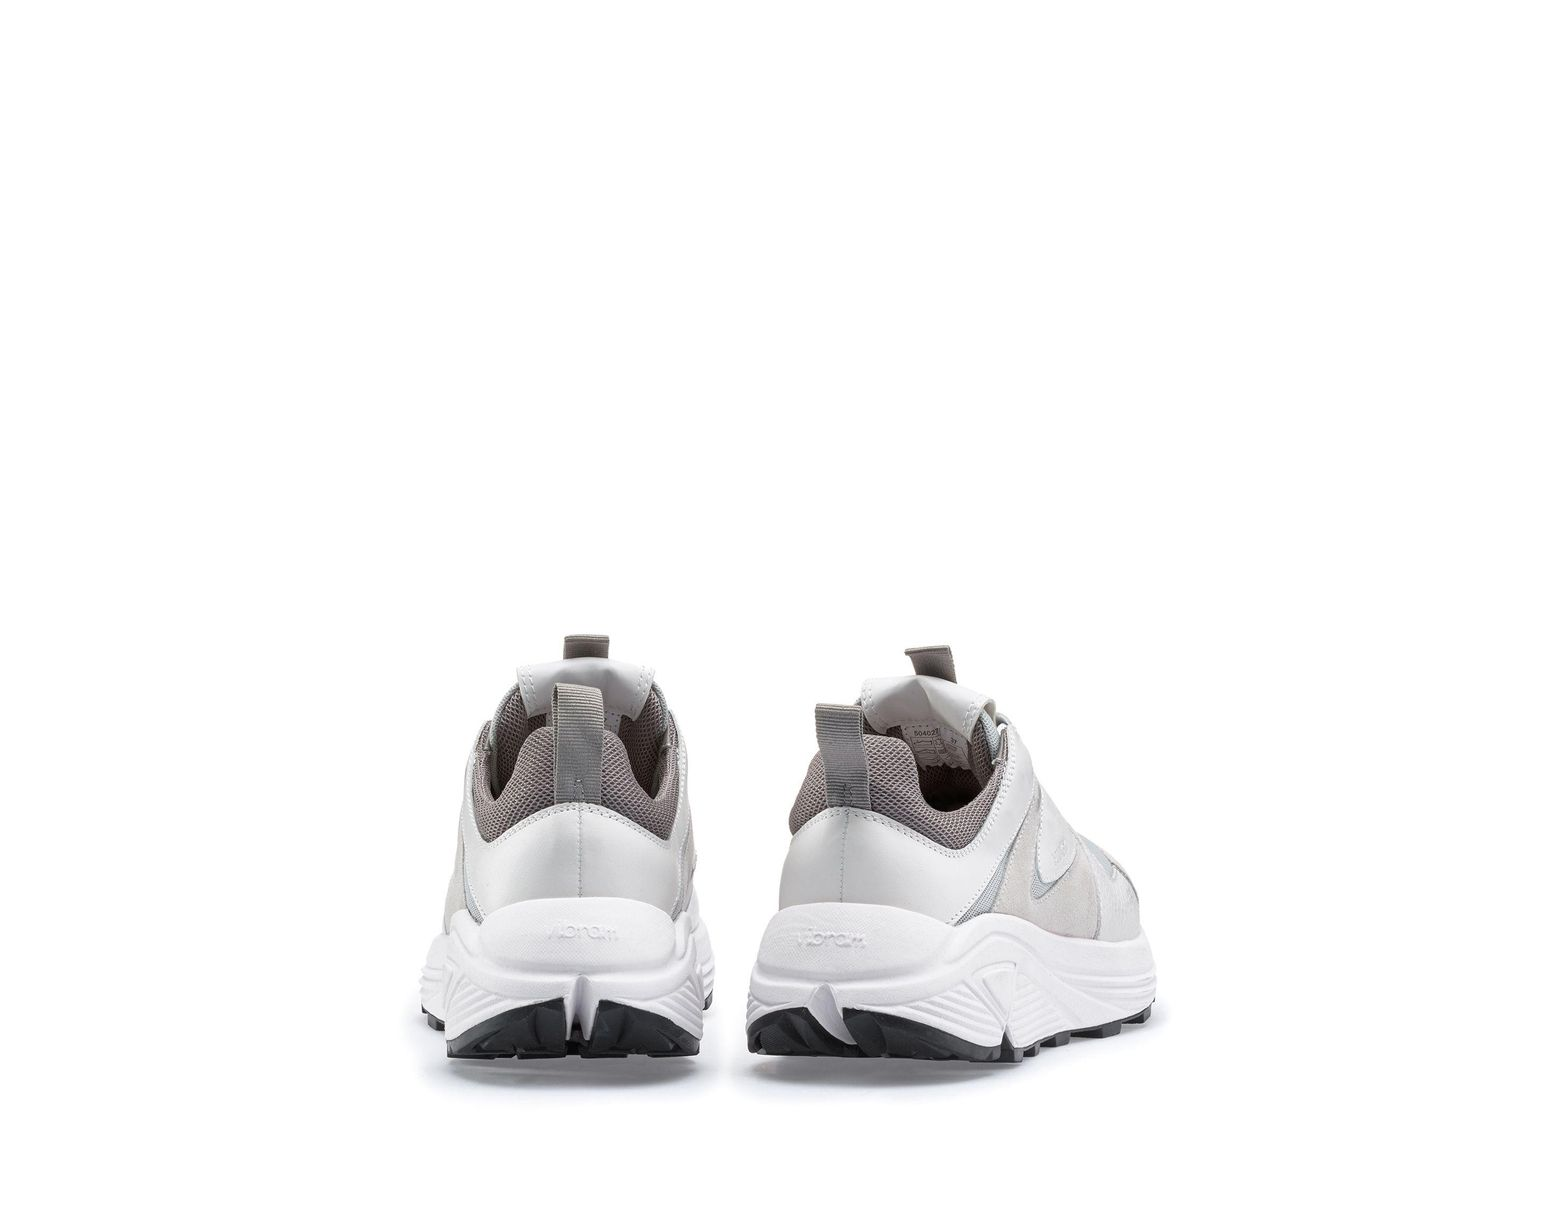 1f79f862c2 HUGO Chunky Running-style Trainers In Mesh, Suede And Leather in White -  Save 50% - Lyst